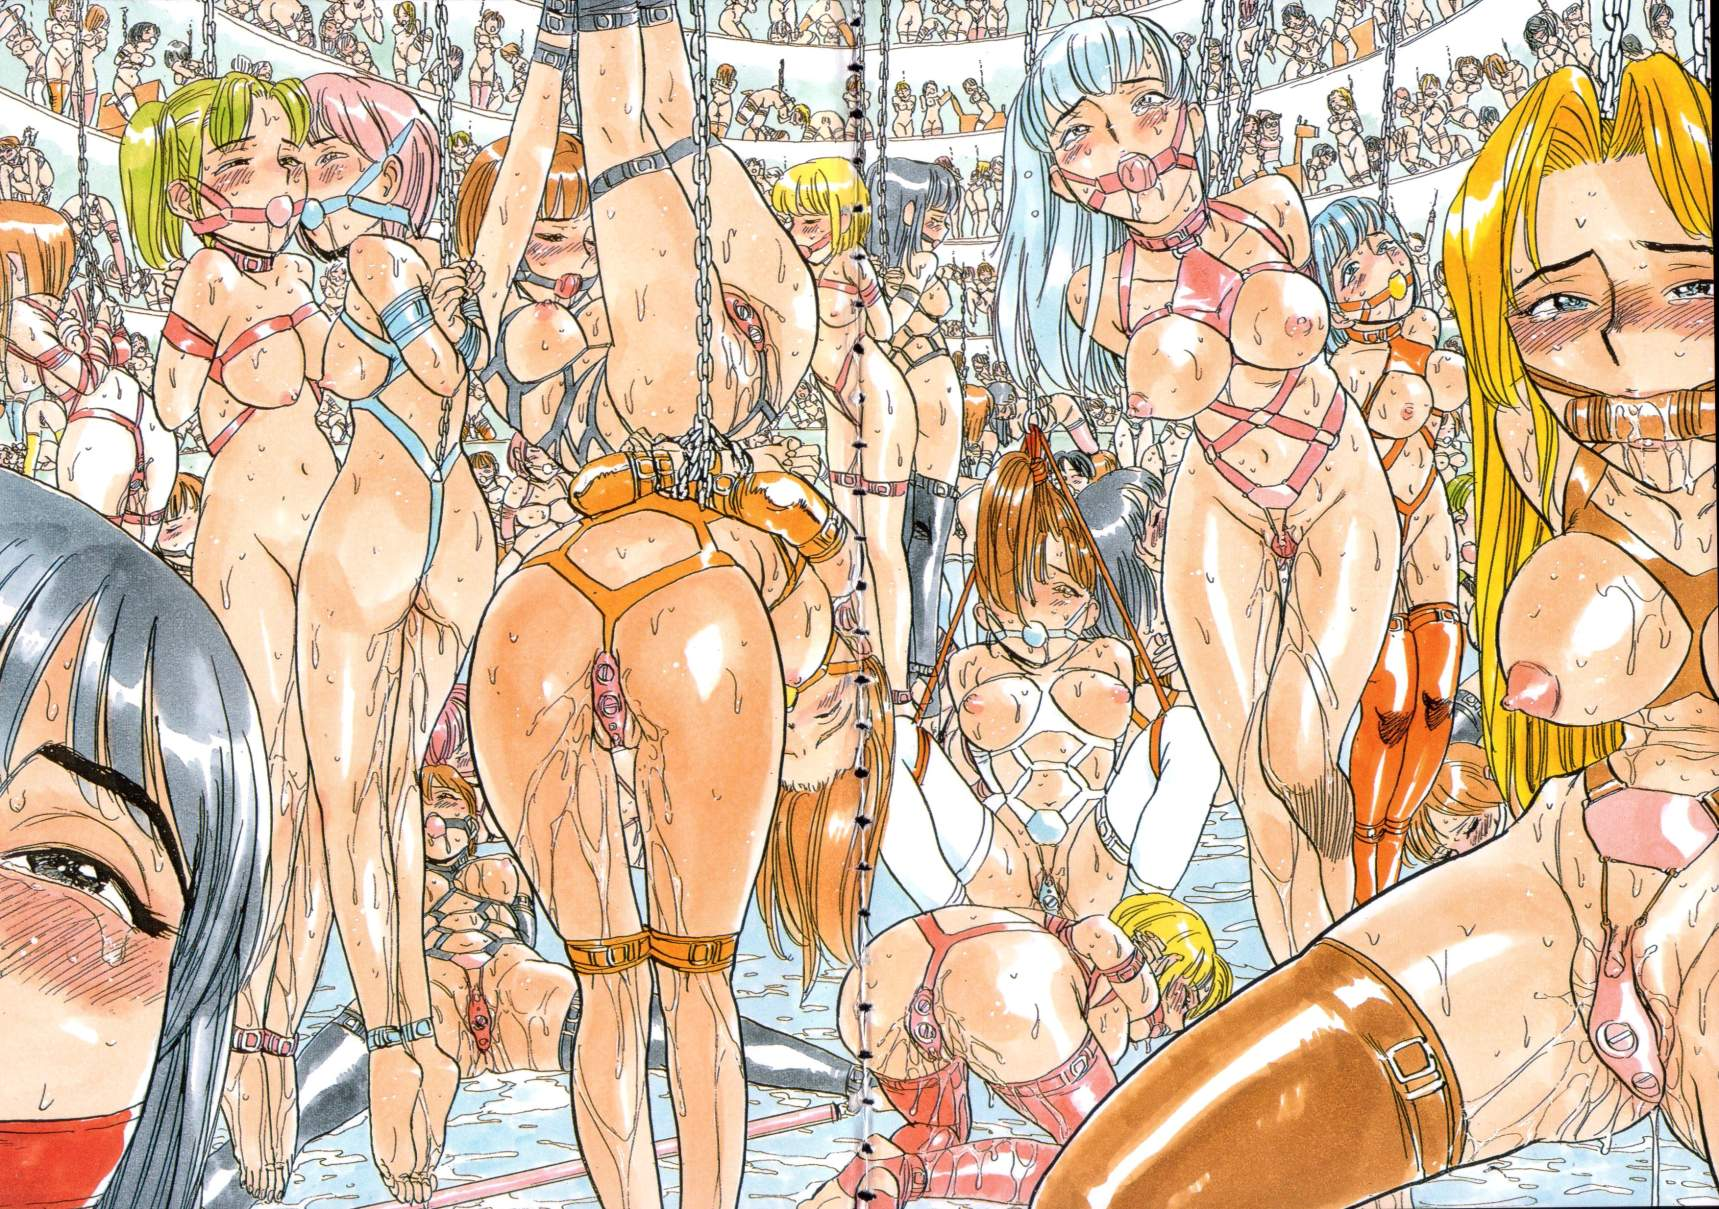 bondage fantasies pushed to the limit, illustrated hentai-style